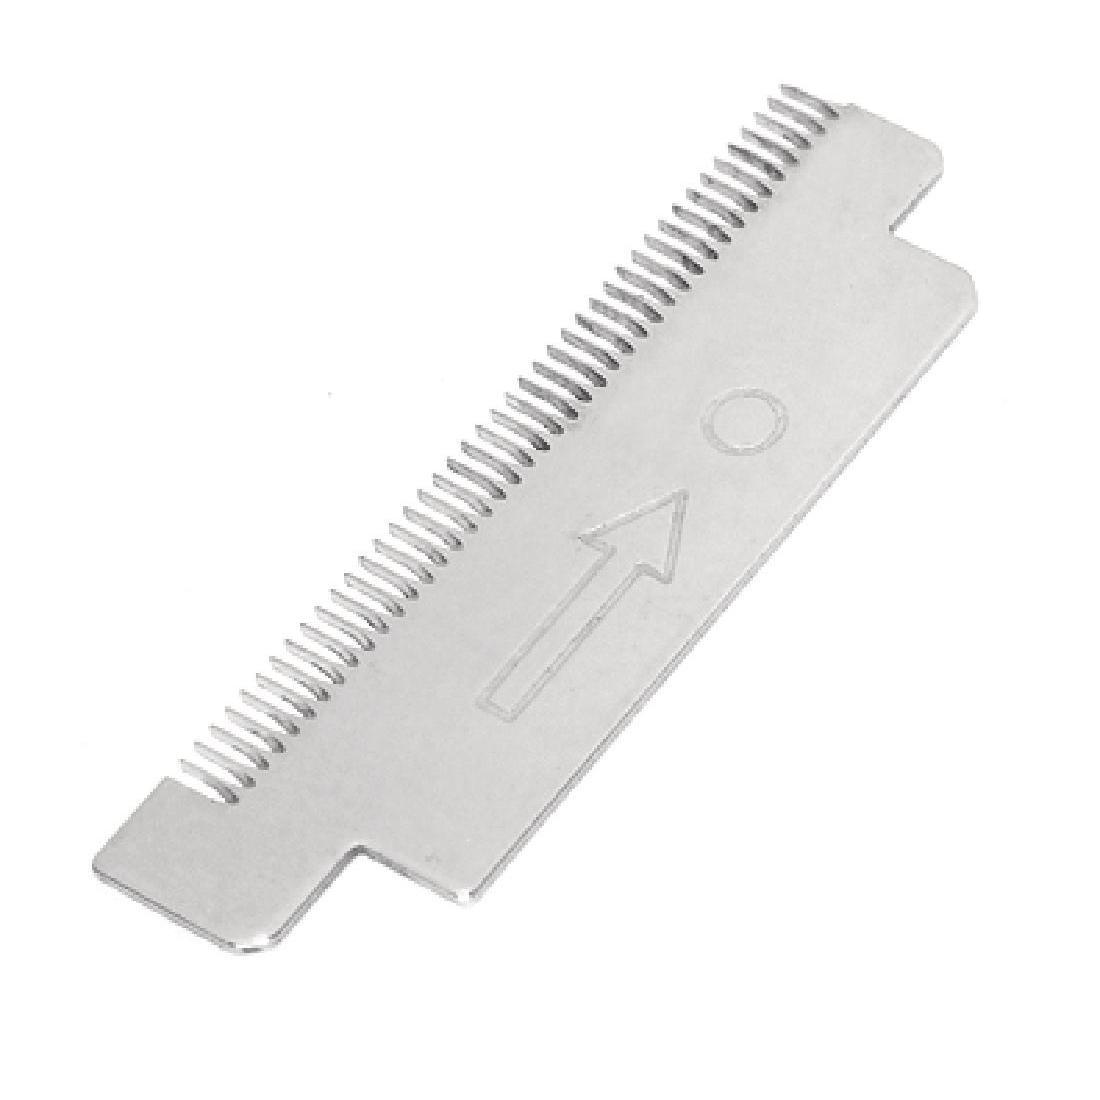 Vogue Fine Spare Blade for Veg Slicer - Each - K468